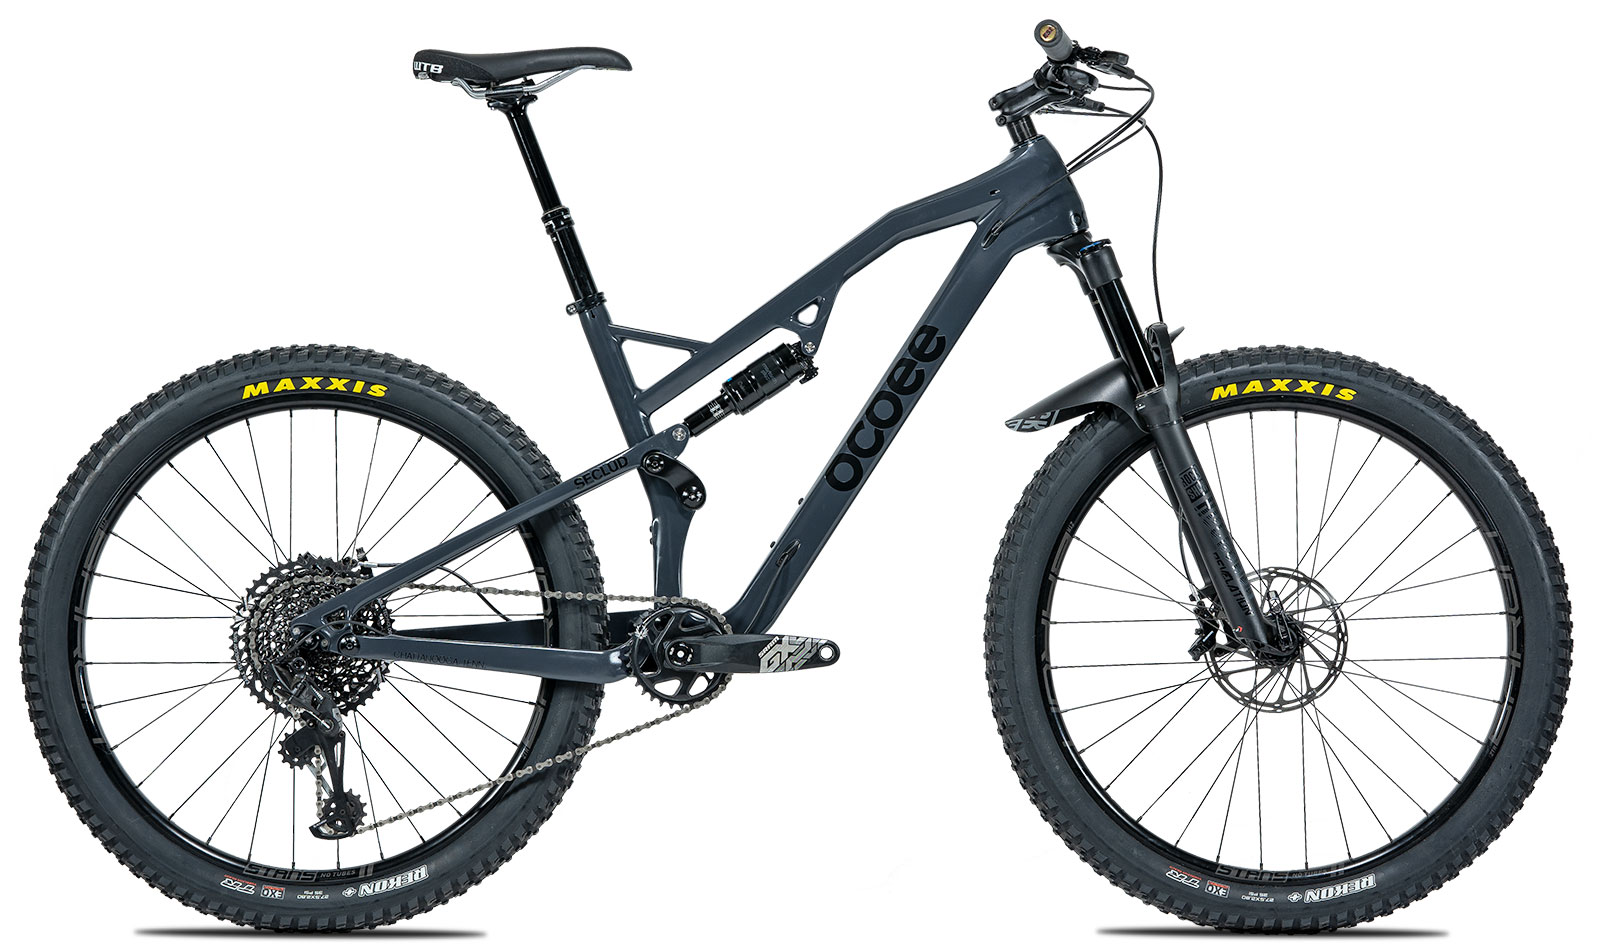 Ocoee carbon bikes consumer-direct affordable carbon all-road gravel adventure and trail mountain bikes